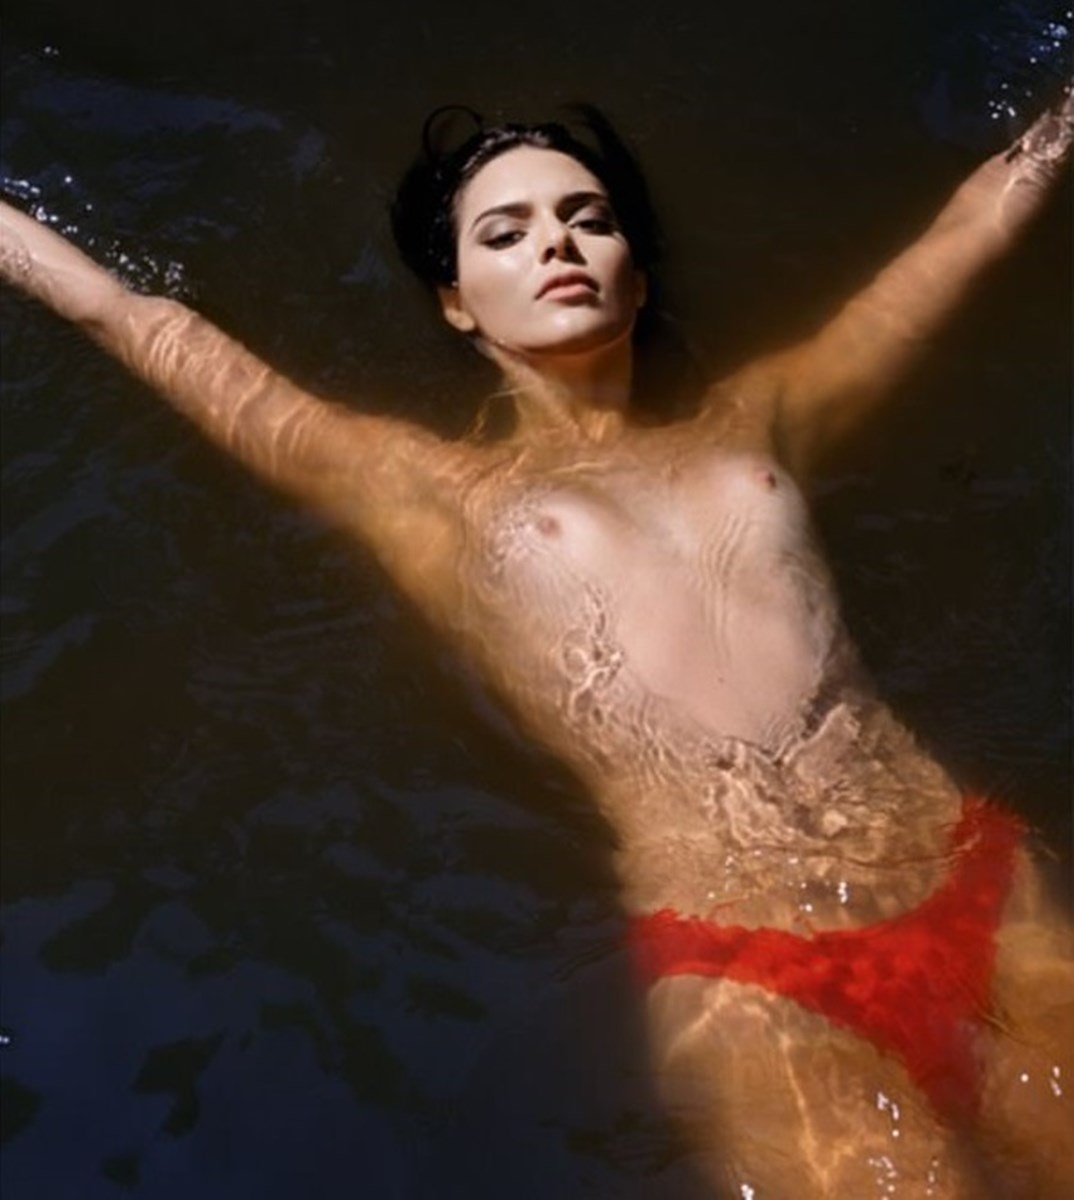 Kendall Jenner Topless Nude Pics From Love Magazine